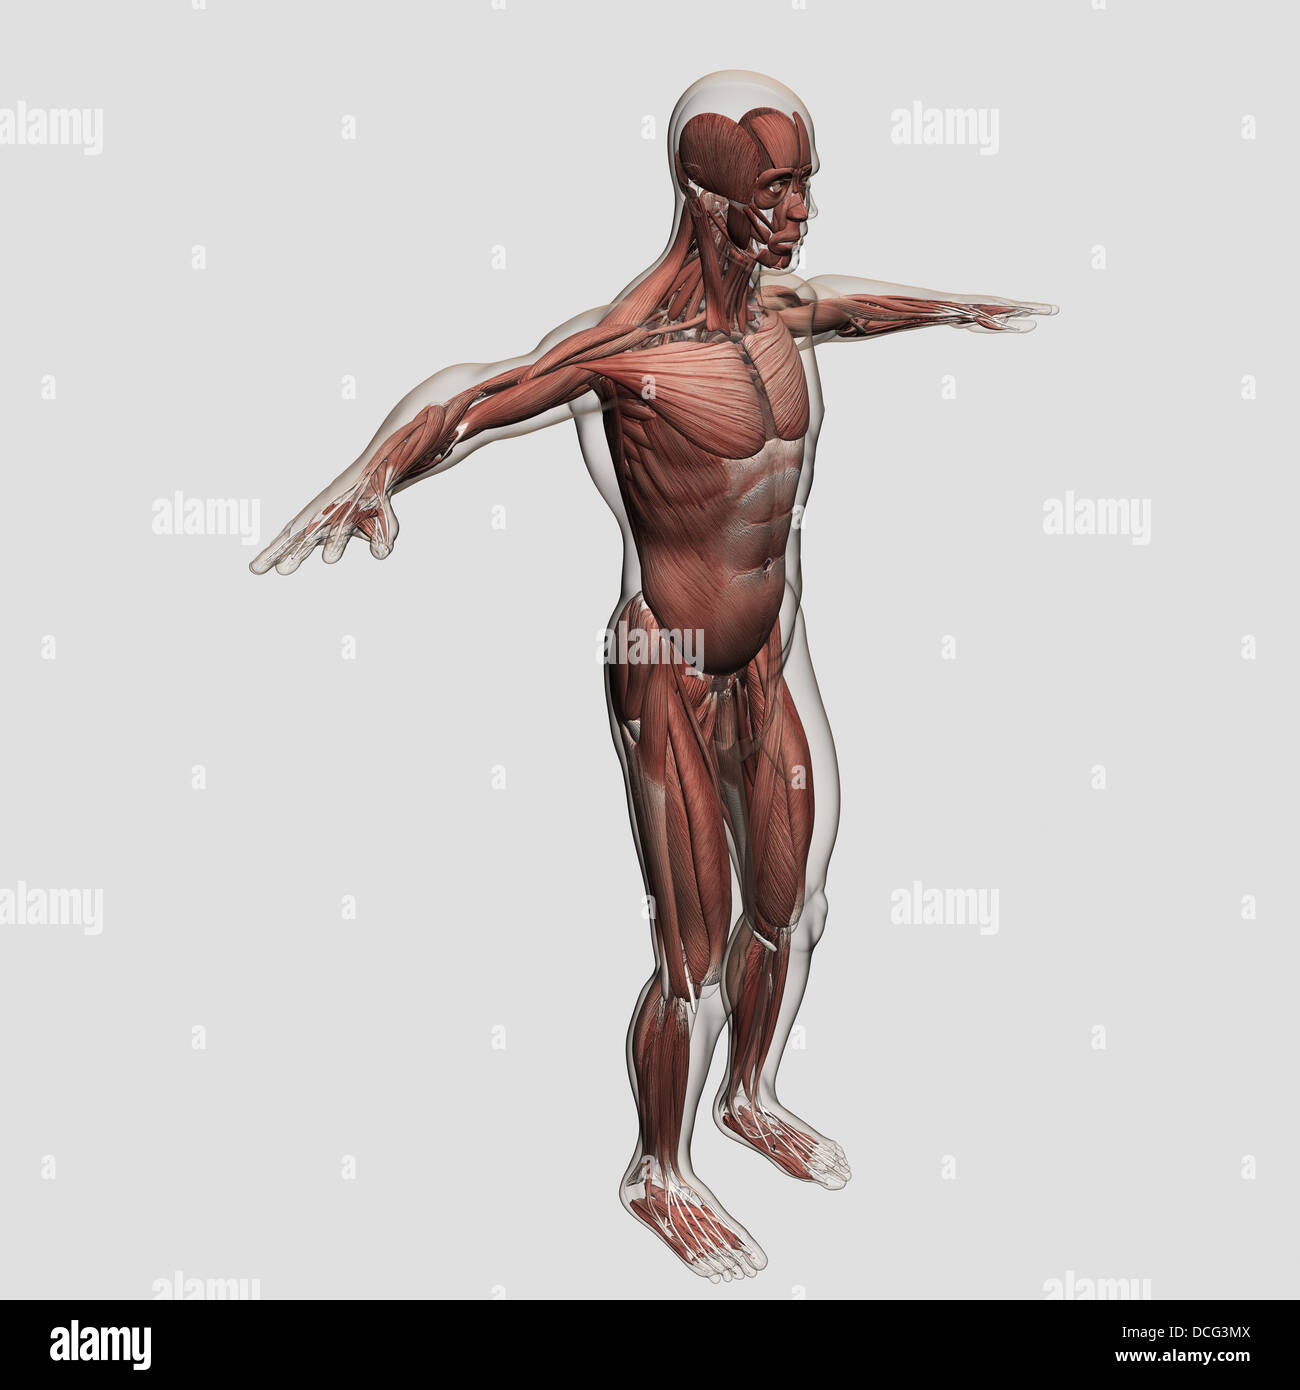 Anatomy of male muscular system, side view Stock Photo: 59361146 - Alamy